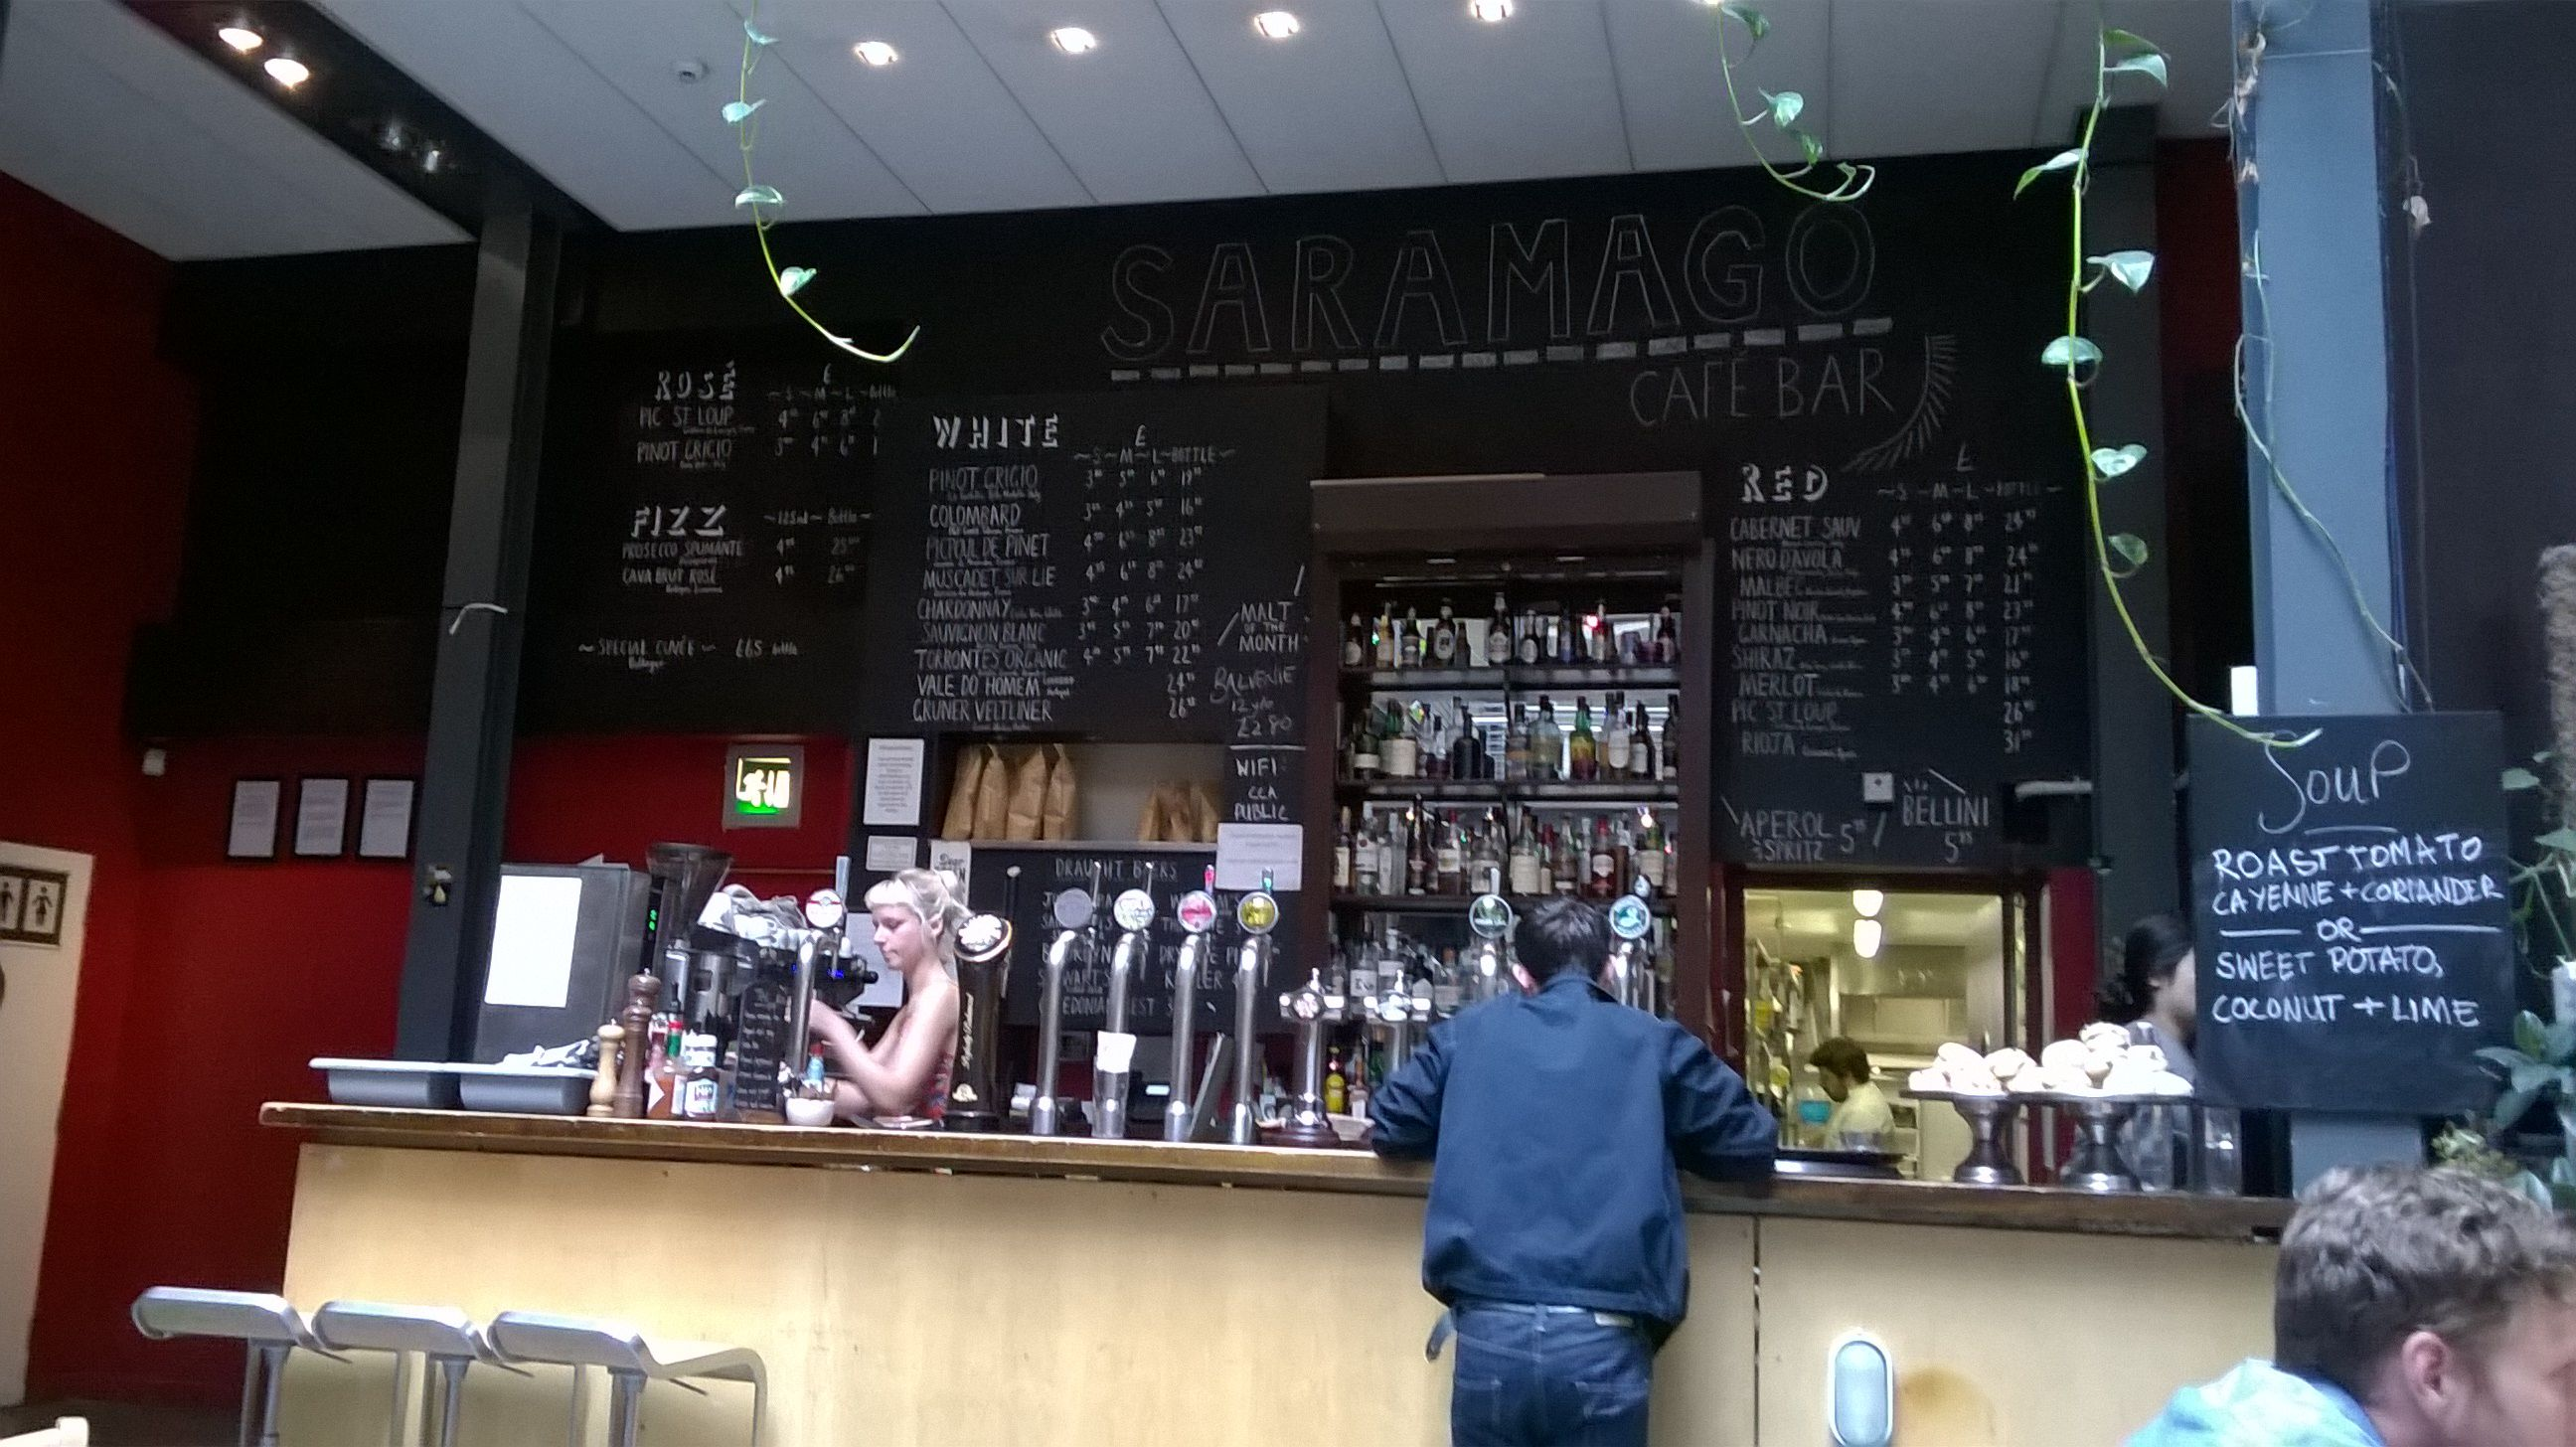 Saramago, vegan cafe bar. CCA (Centre for Contemporary Arts) Glasgow.